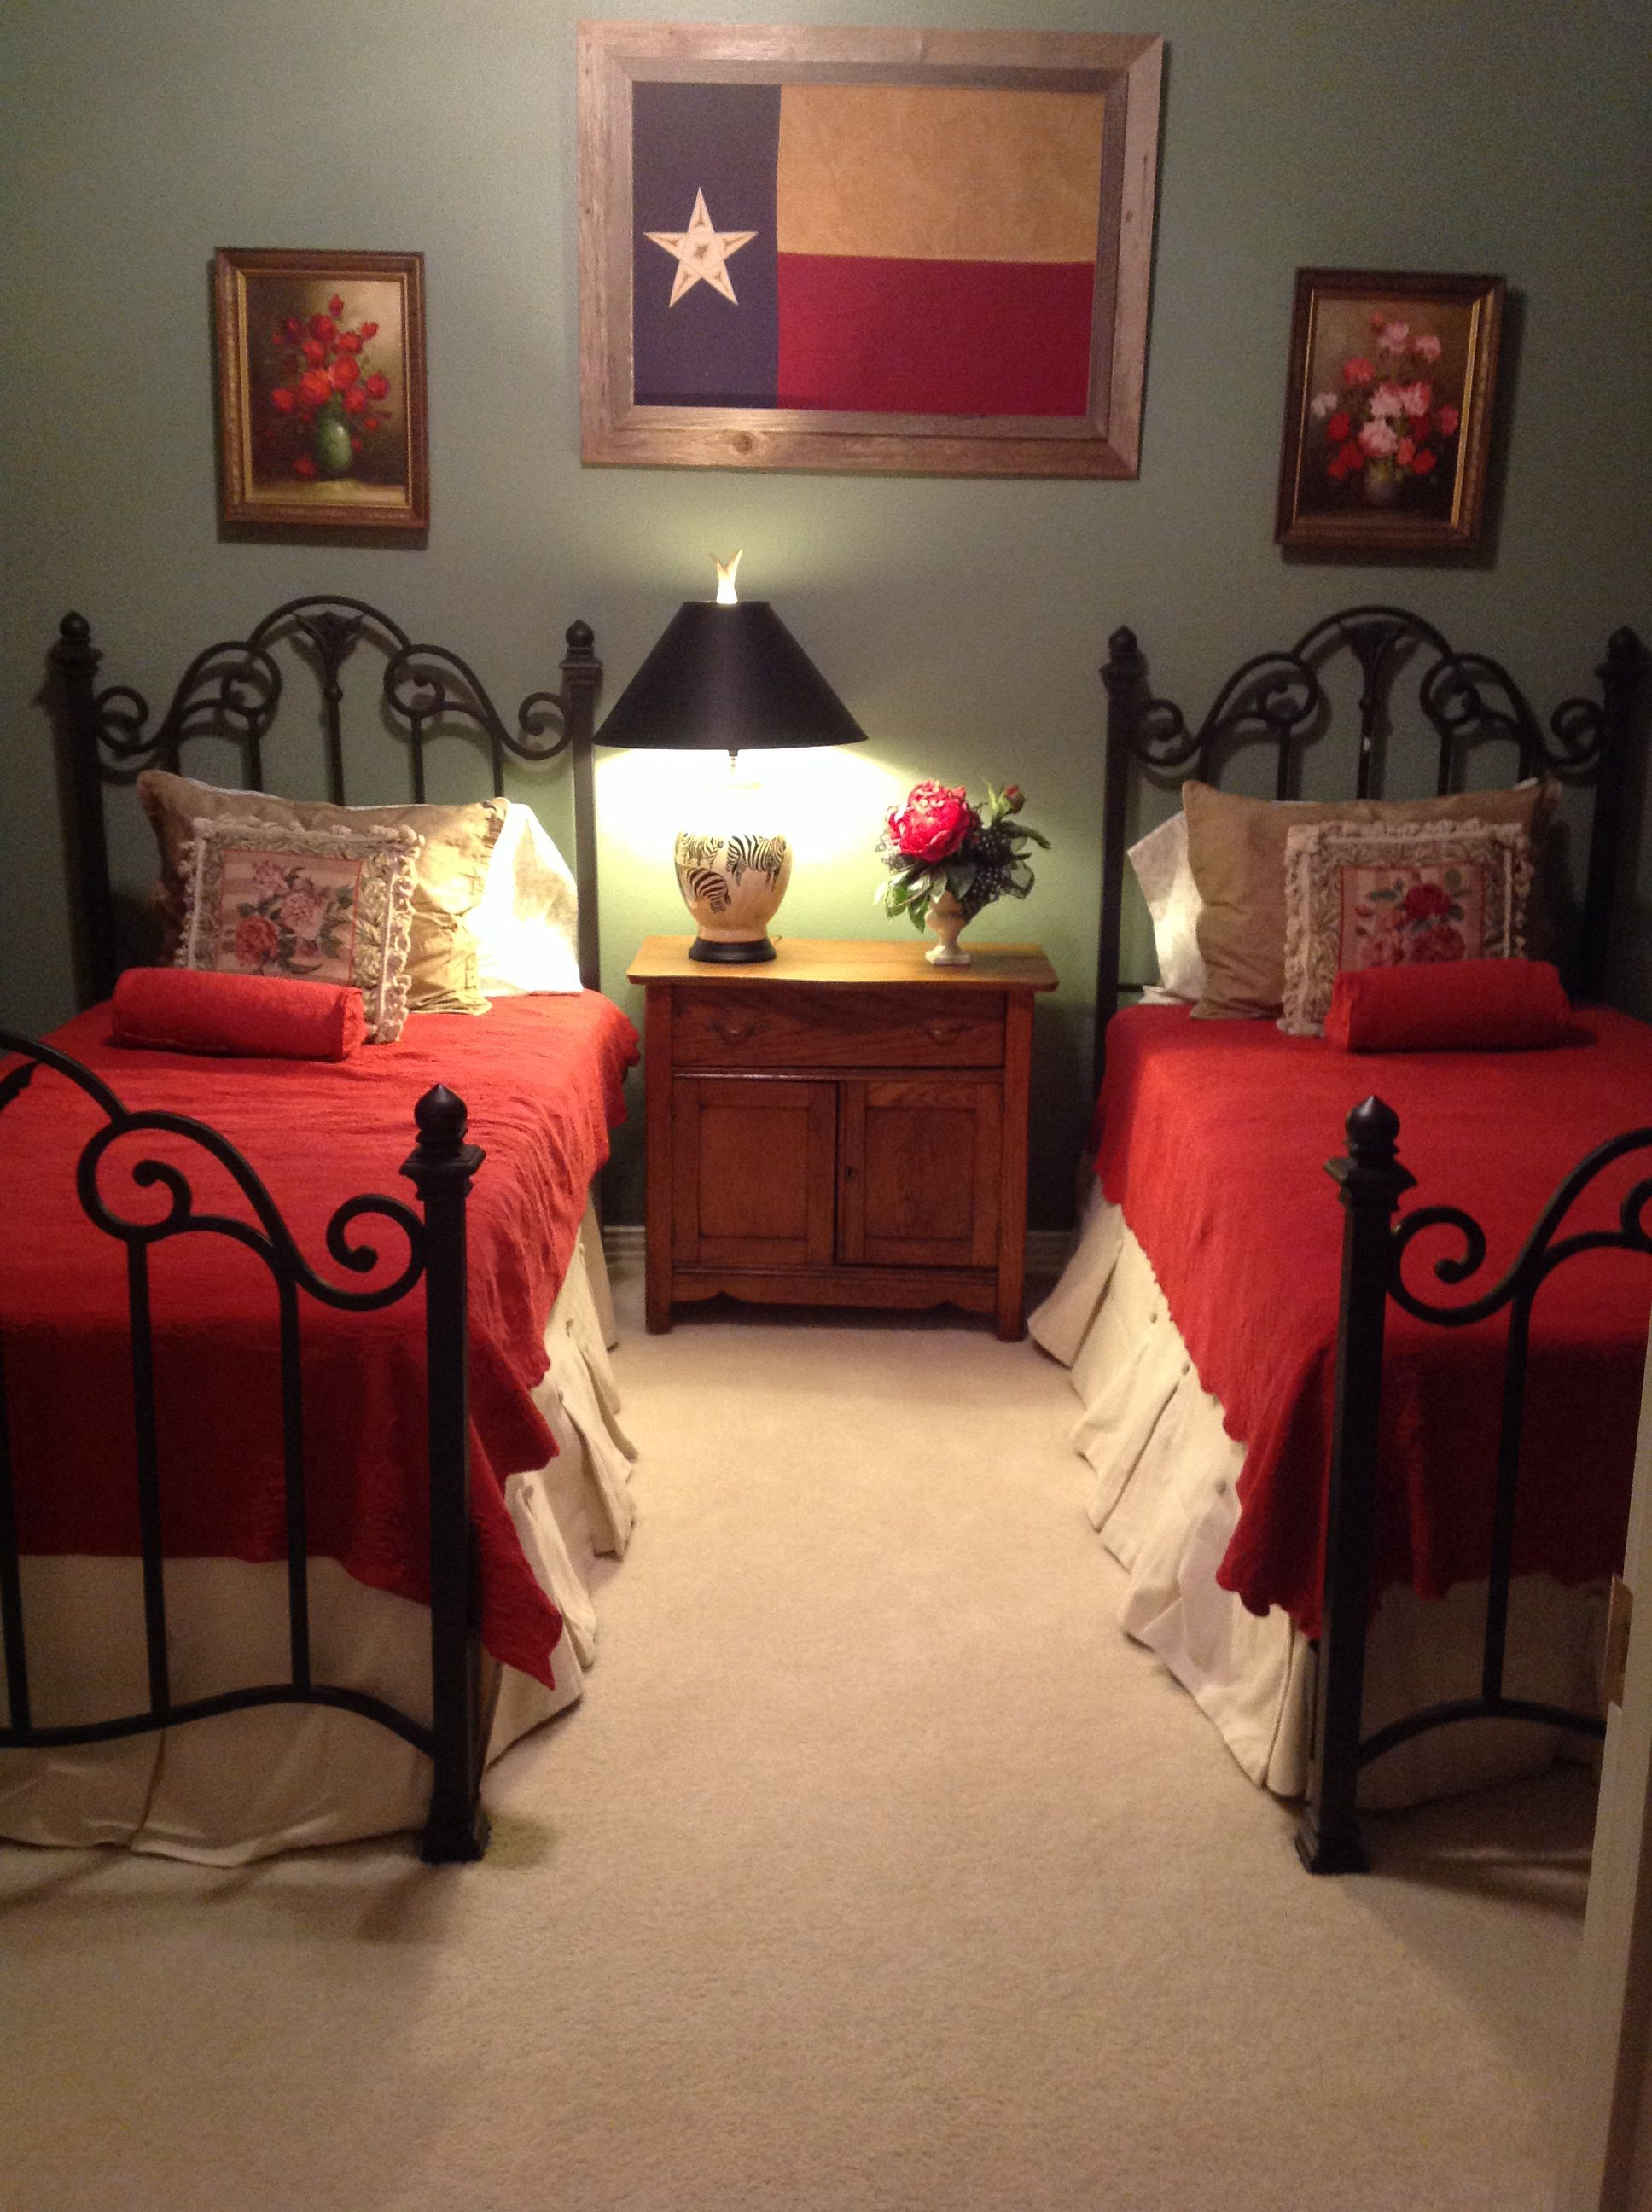 Twin Bed Bedroom Texas Flag Red Bedspreads Sage Walls Bed